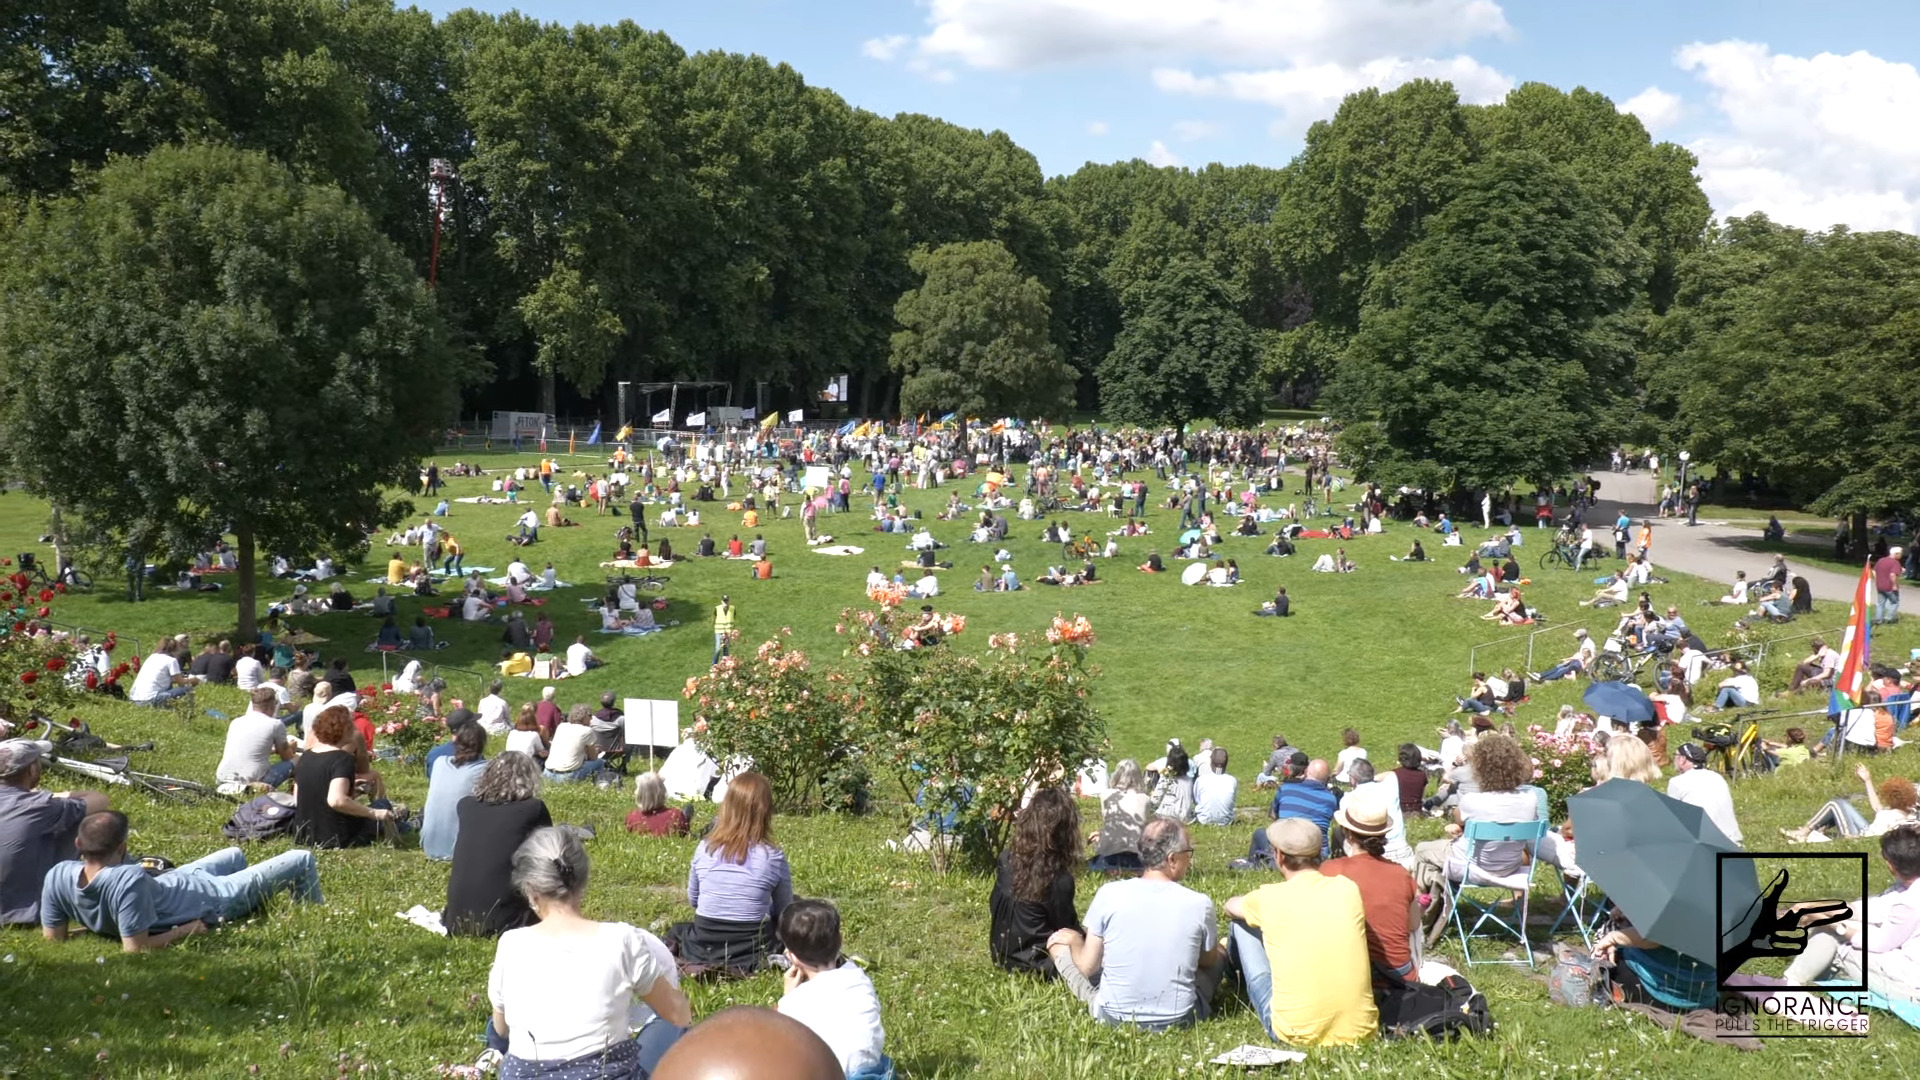 the-creative-caravan-meditation-tour-–-demonstration-in-stuttgart-im-schlossgarten-am-2072020-|-kenfm.de